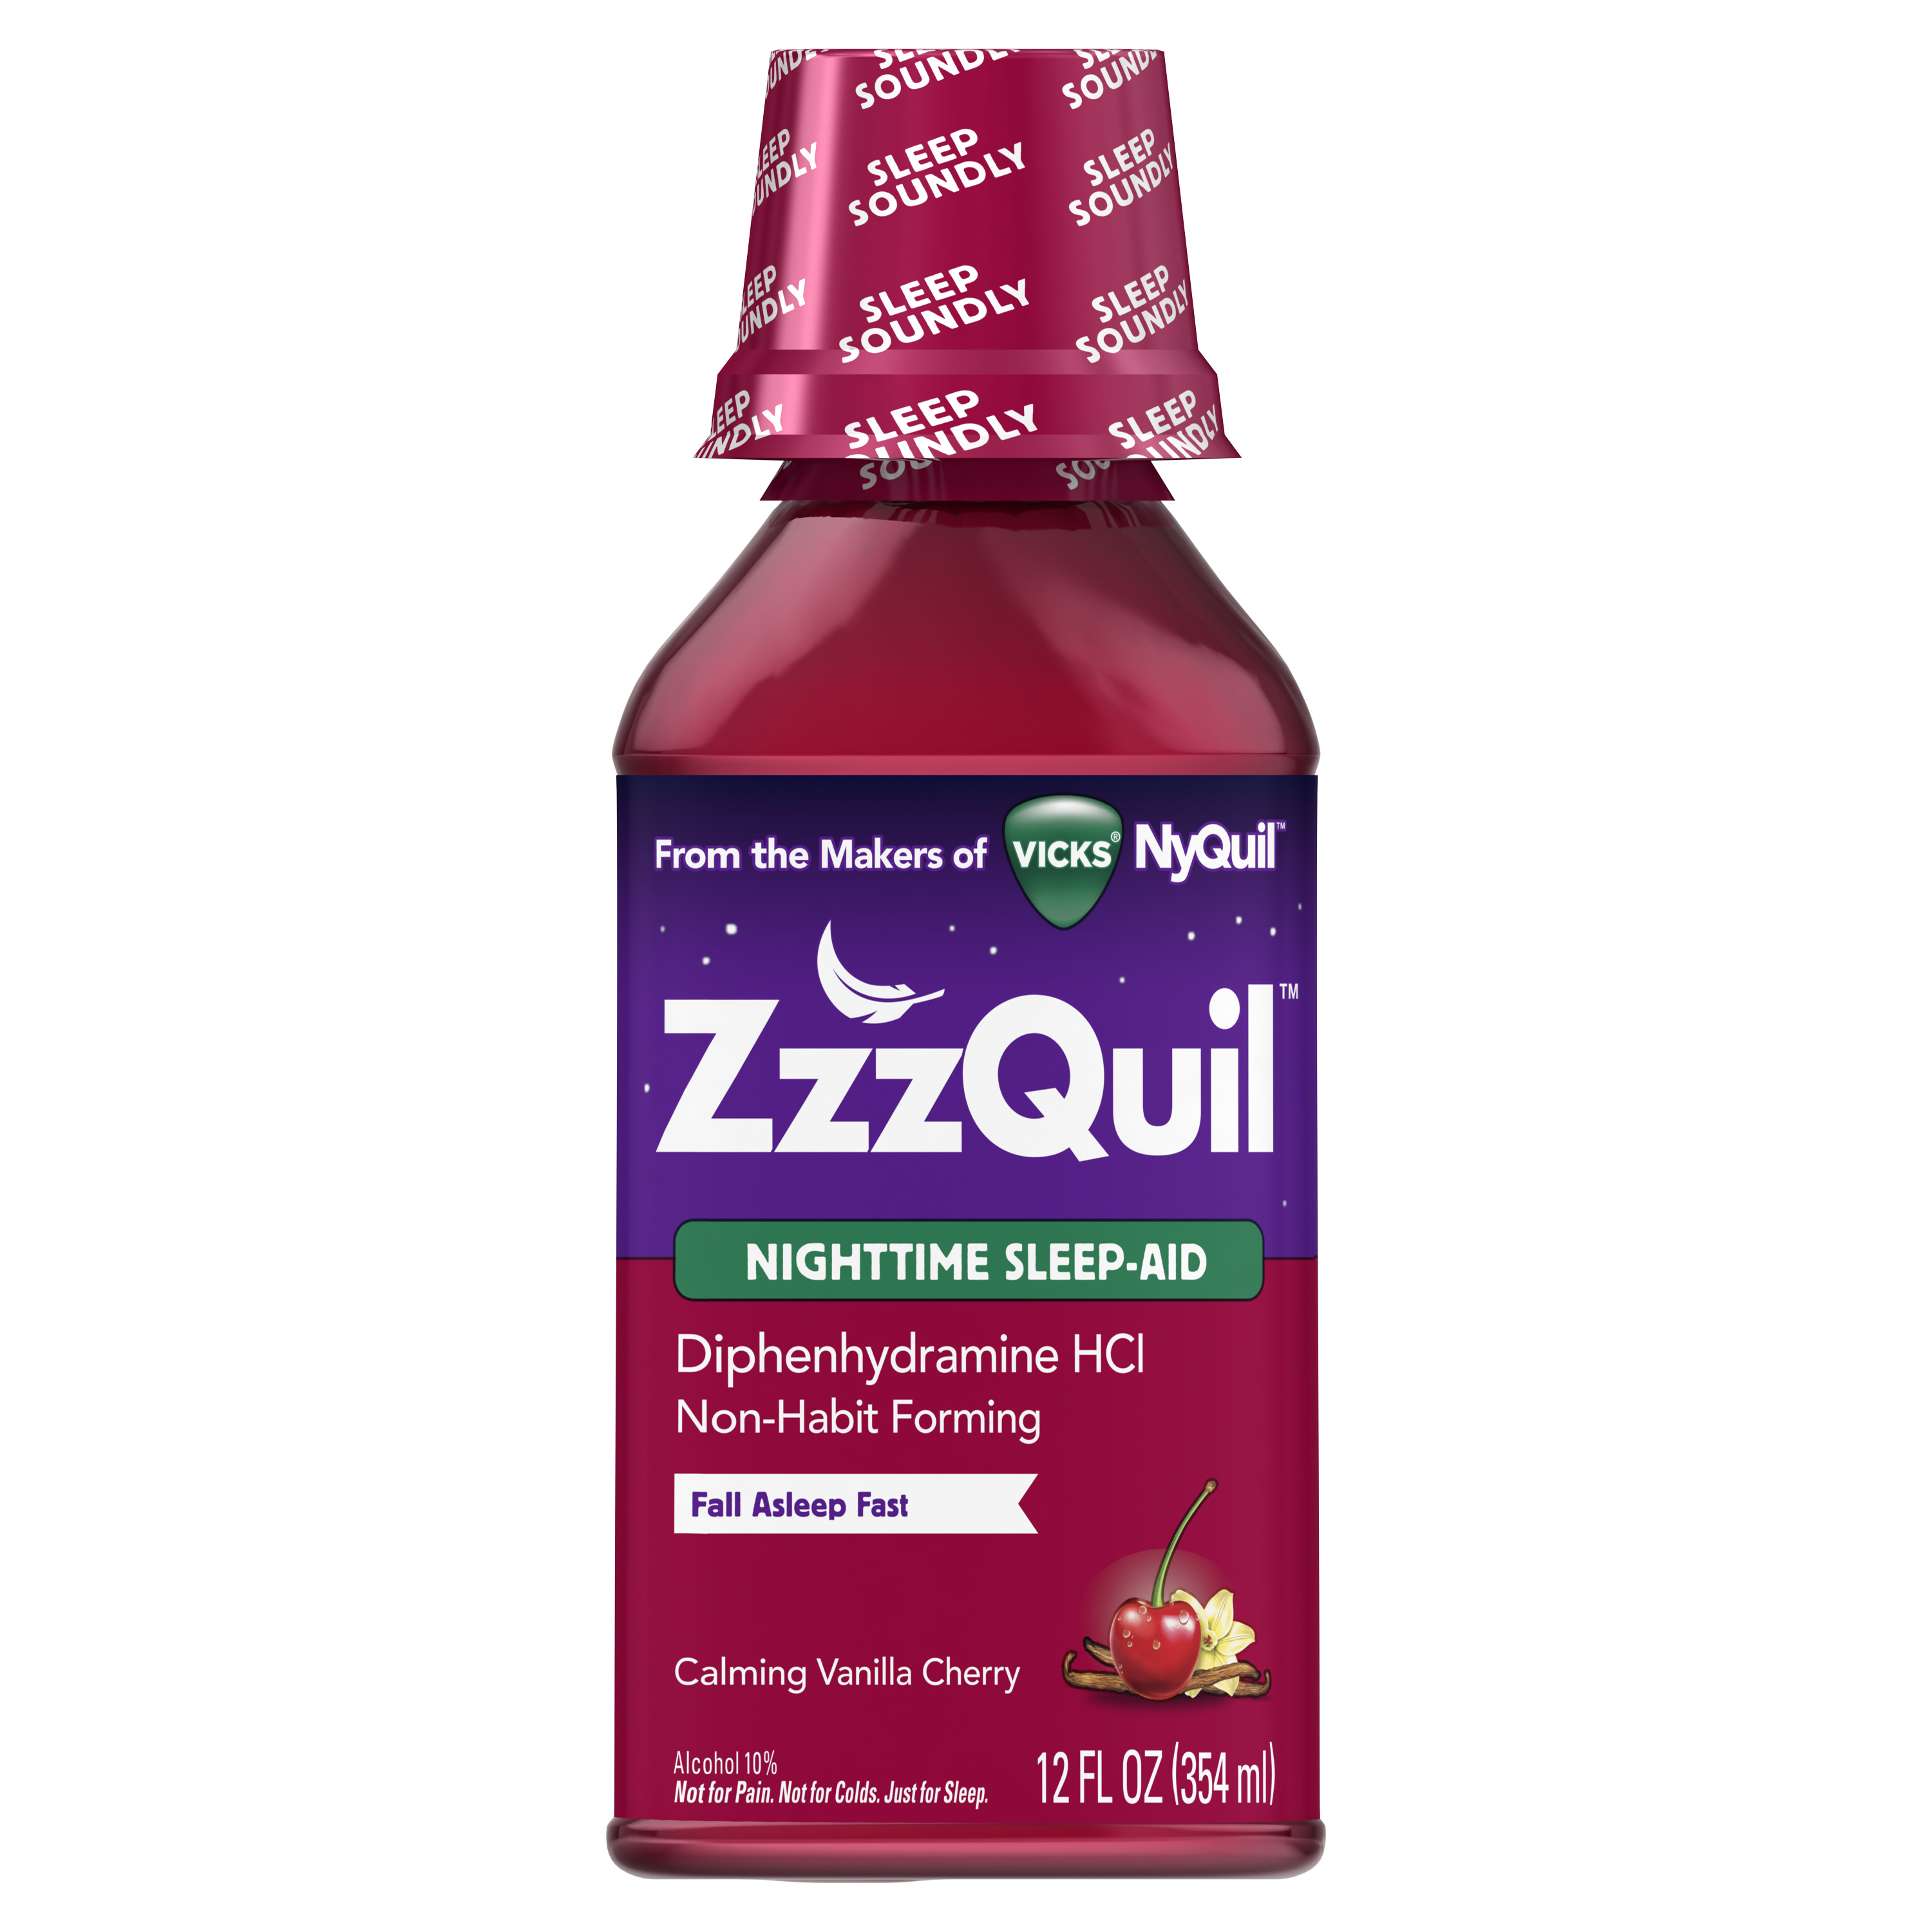 ZzzQuil Nighttime Sleep Aid Liquid by Vicks, Calming Vanilla Cherry Flavor, 12 Fl Oz